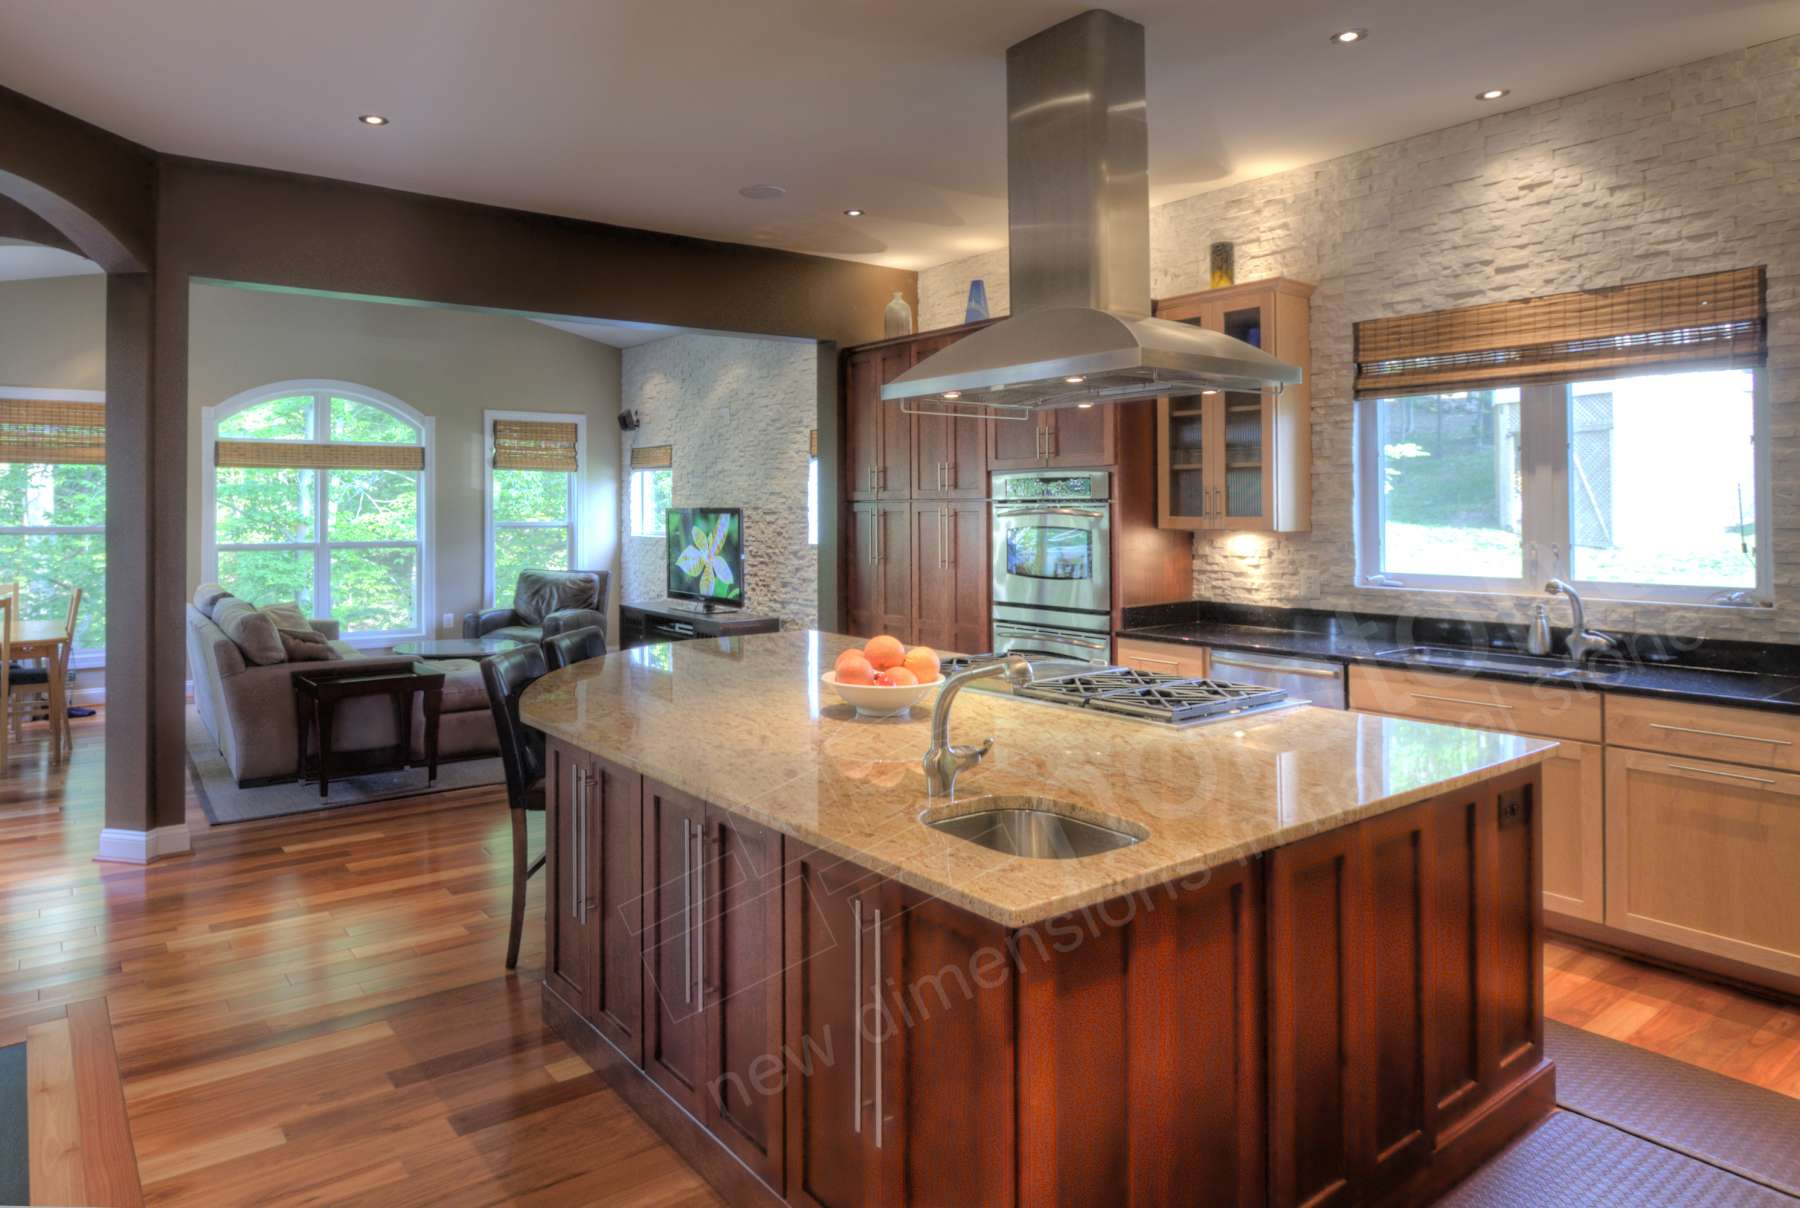 Countertop to ceiling white stacked stone backsplash in a remodeled kitchen with large island